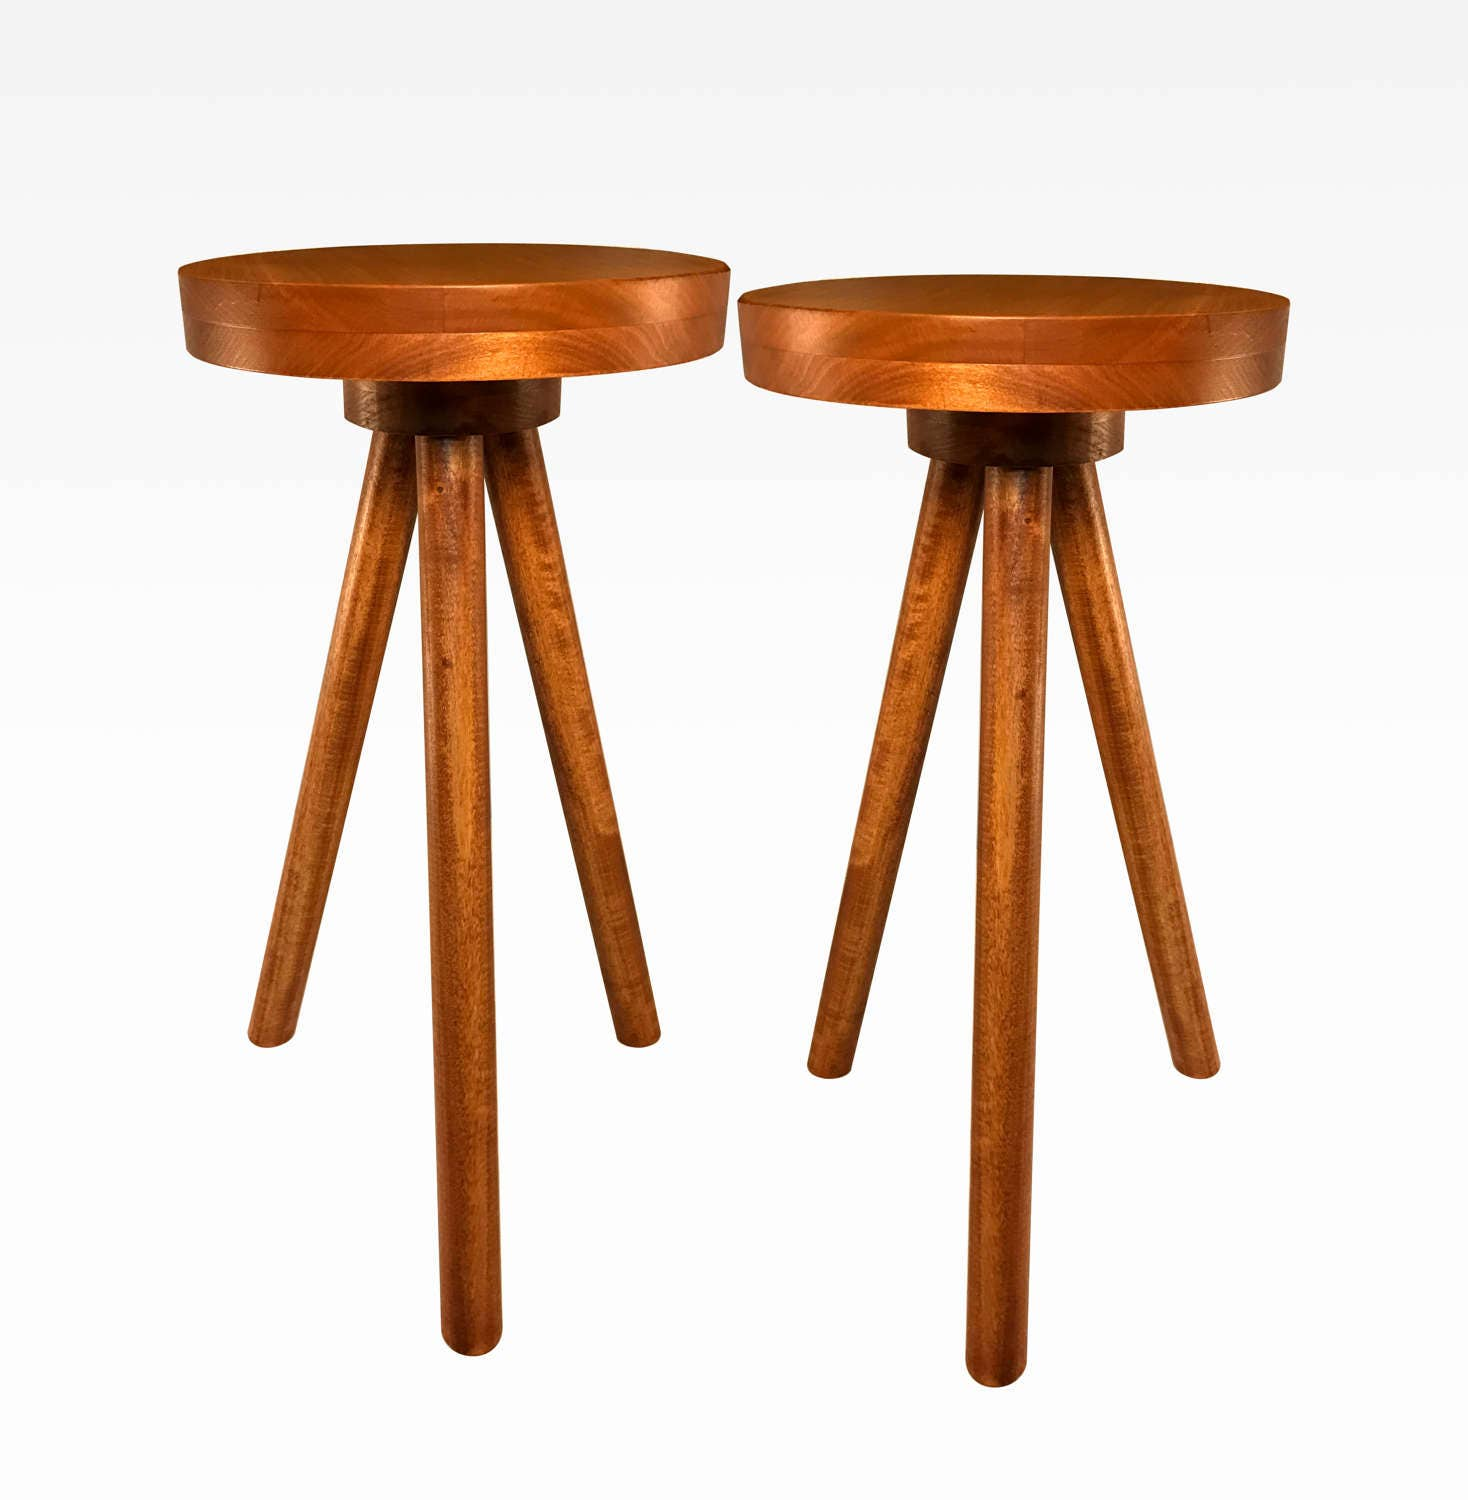 Side Table End Table Round Wood Stool By Cw Furniture Set Of Two In Cherry Custom Handmade Barstool Bar Set Modern Three Legged Nightstand